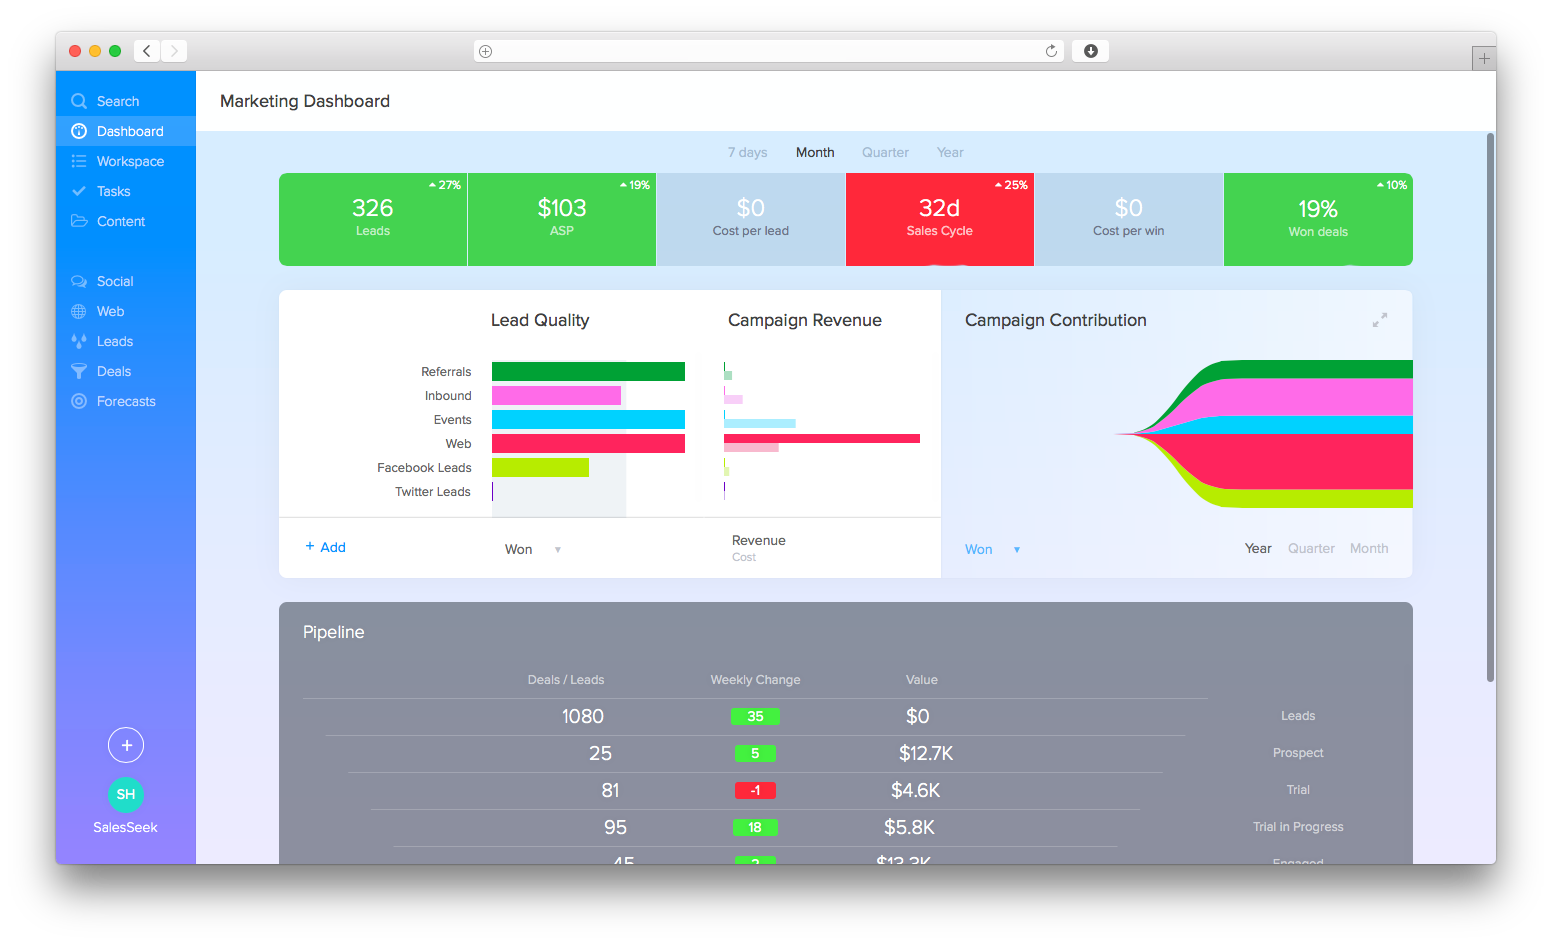 SalesSeek Demo - Marketing Dashboard